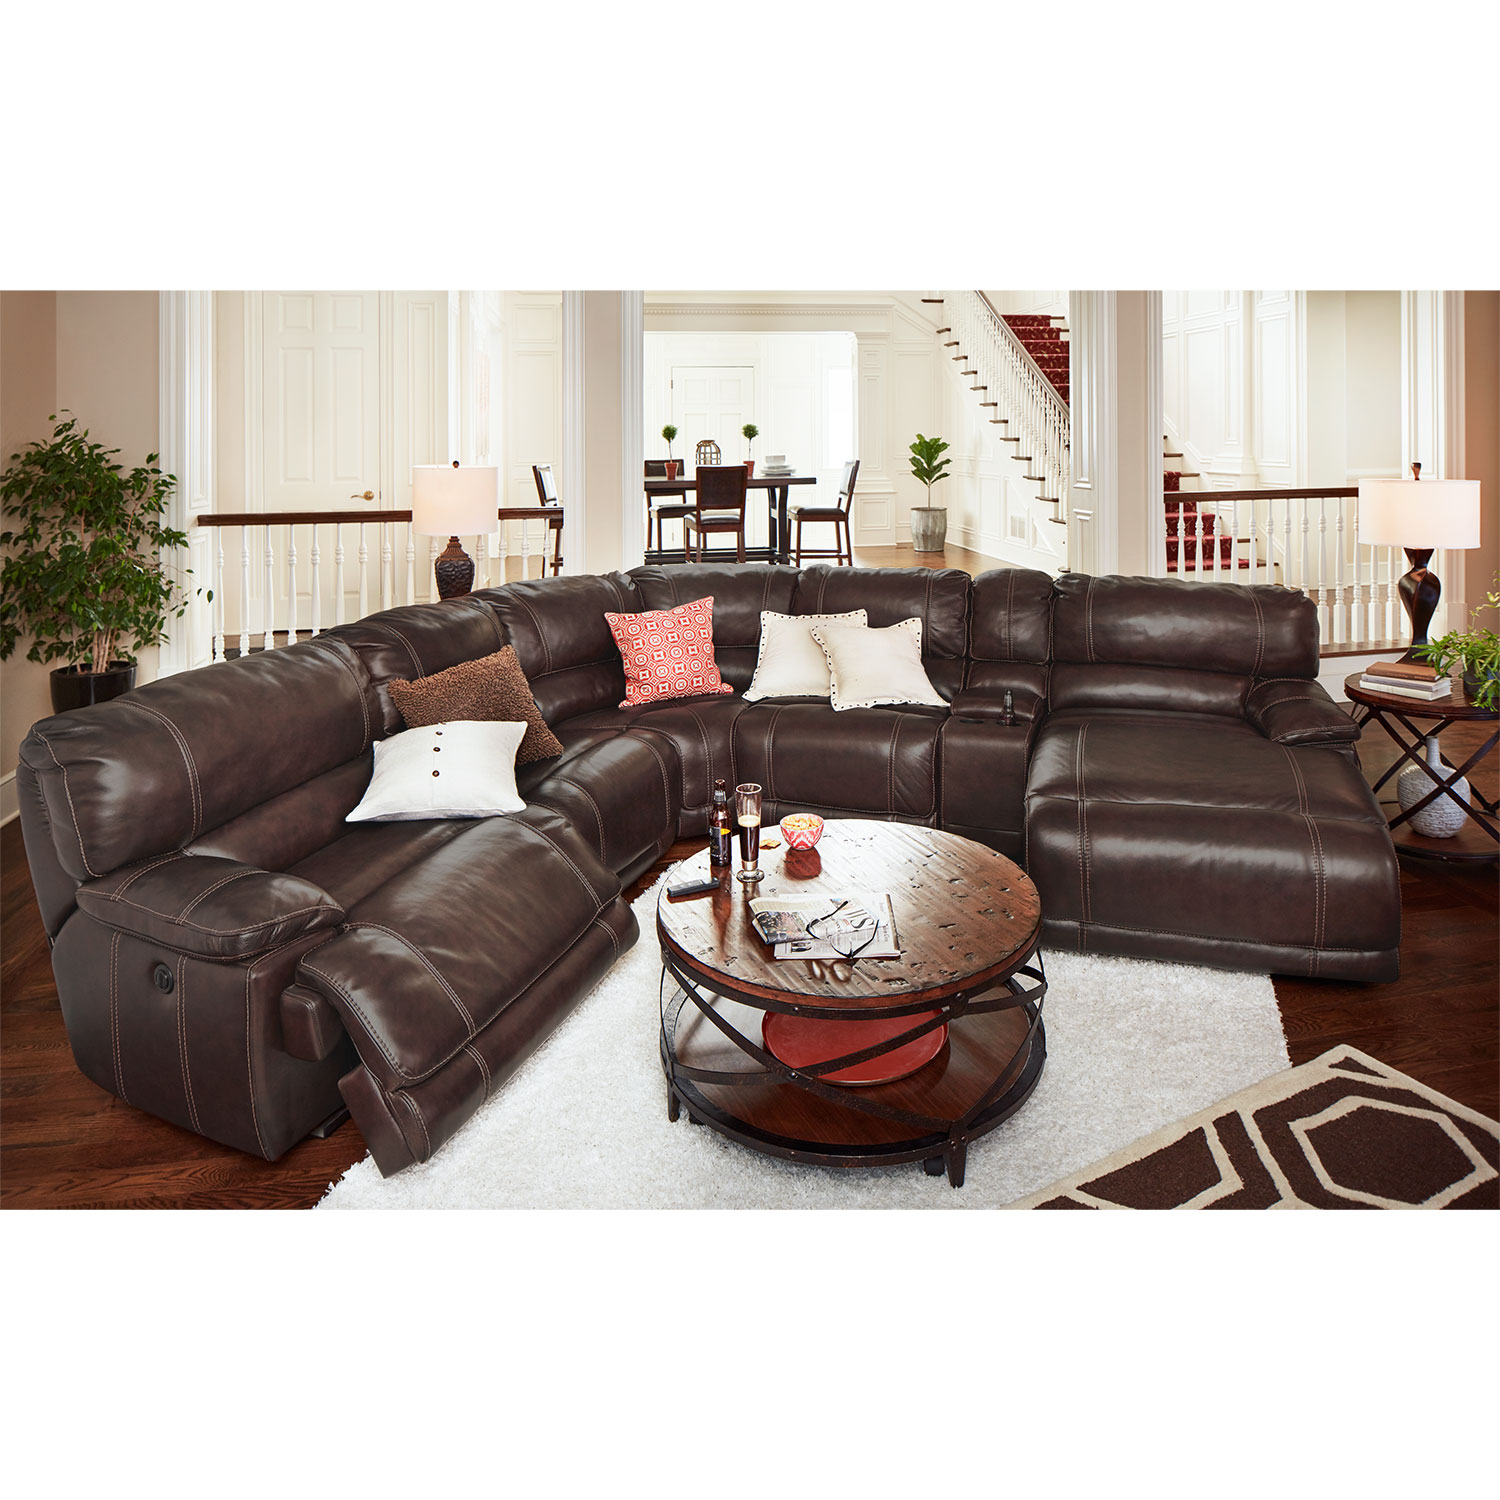 St. Malo 6-Piece Power Reclining Sectional with Right-Facing Chaise - Brown by One80. Living Room ...  sc 1 st  American Signature Furniture & St. Malo 6-Piece Power Reclining Sectional with Right-Facing ... islam-shia.org